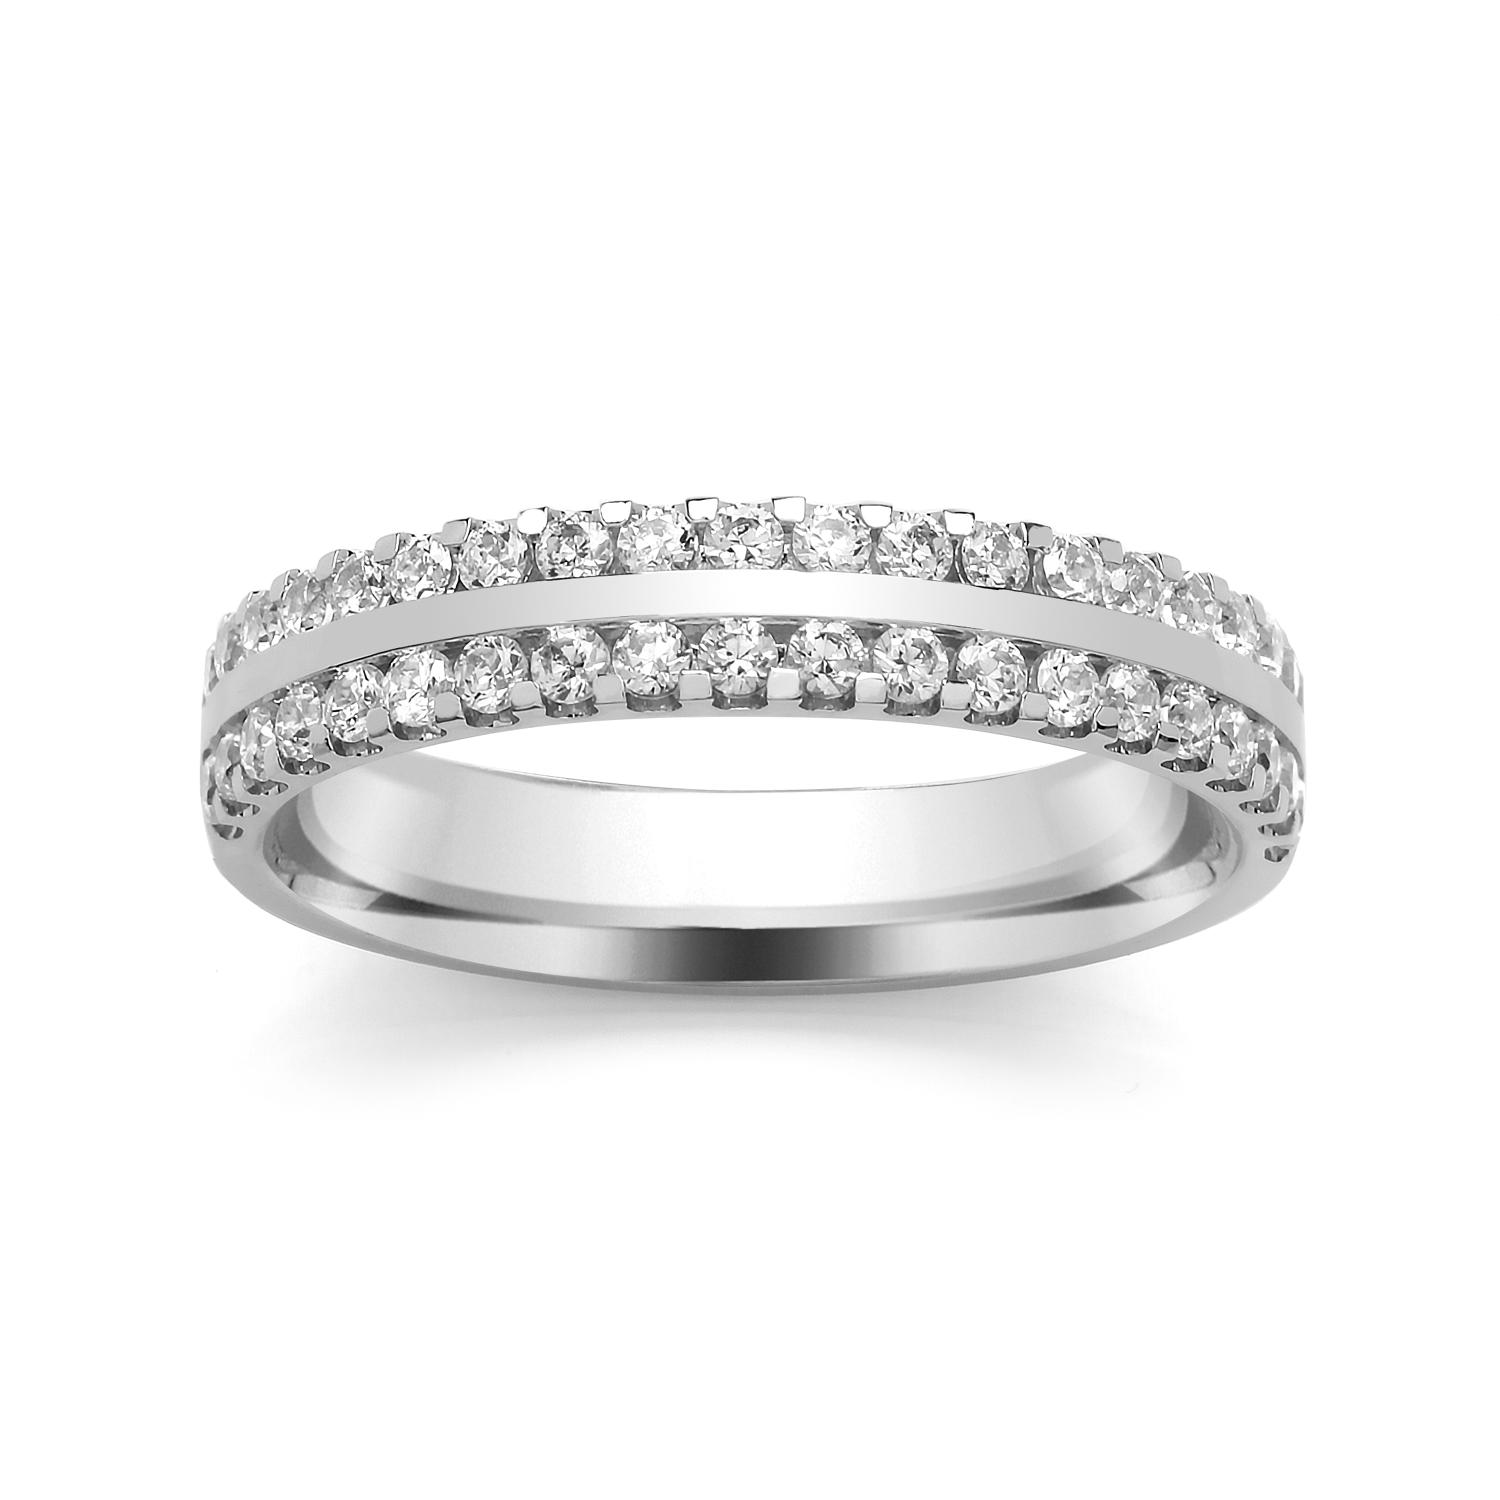 3.8mm Claw Set Wedding Ring, With Centre Bar